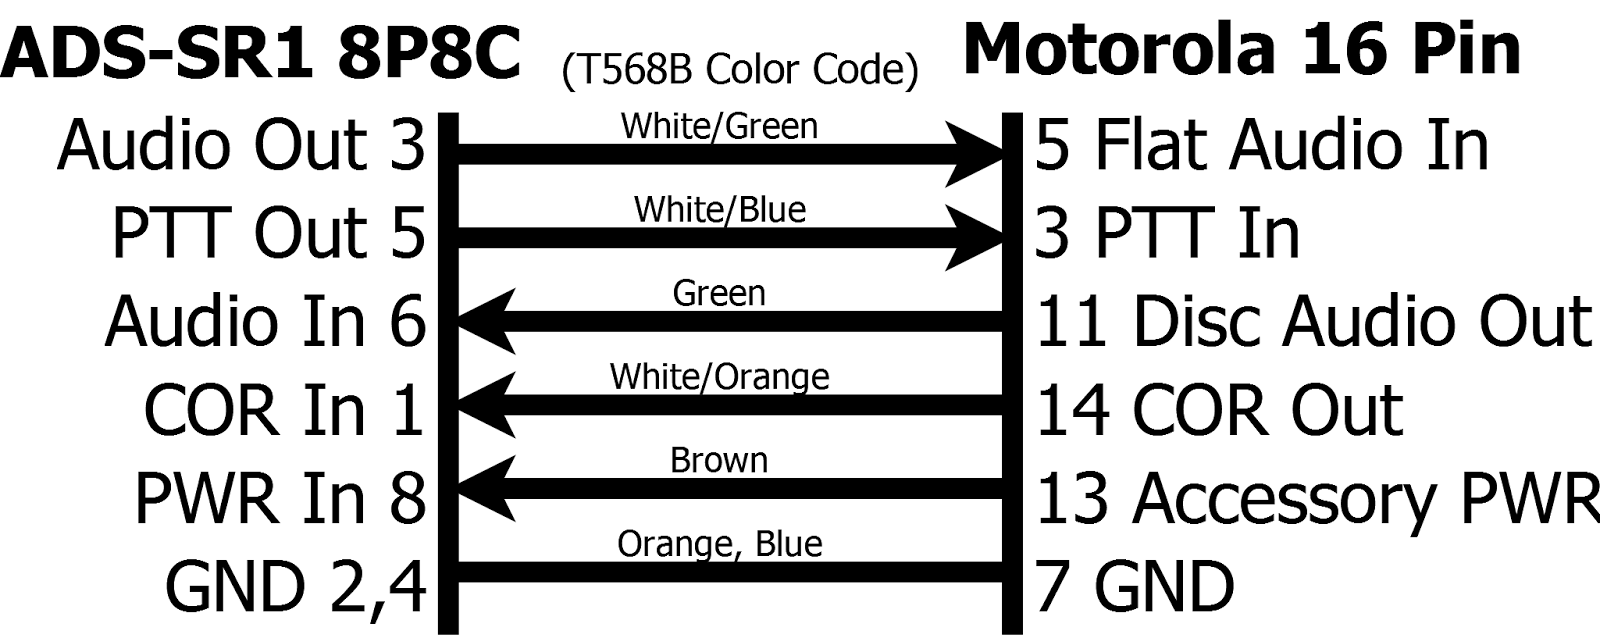 small resolution of pinout diagram for the interface cable including the color code assuming that you crimp the ads sr1 side as if it were a standard t568b ethernet cable or